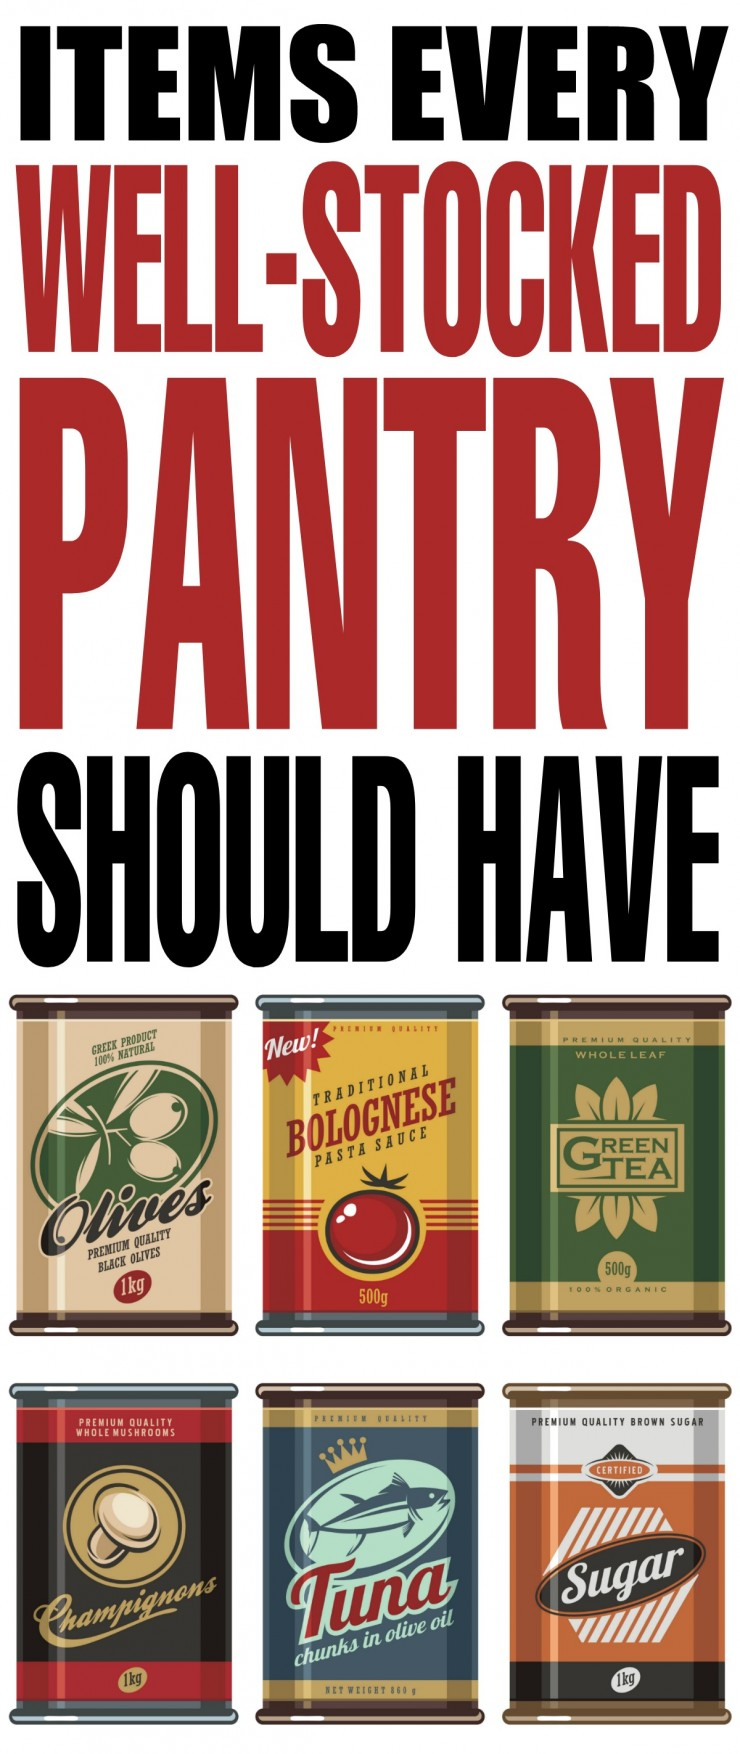 Items Every Well-Stocked Pantry Should Have